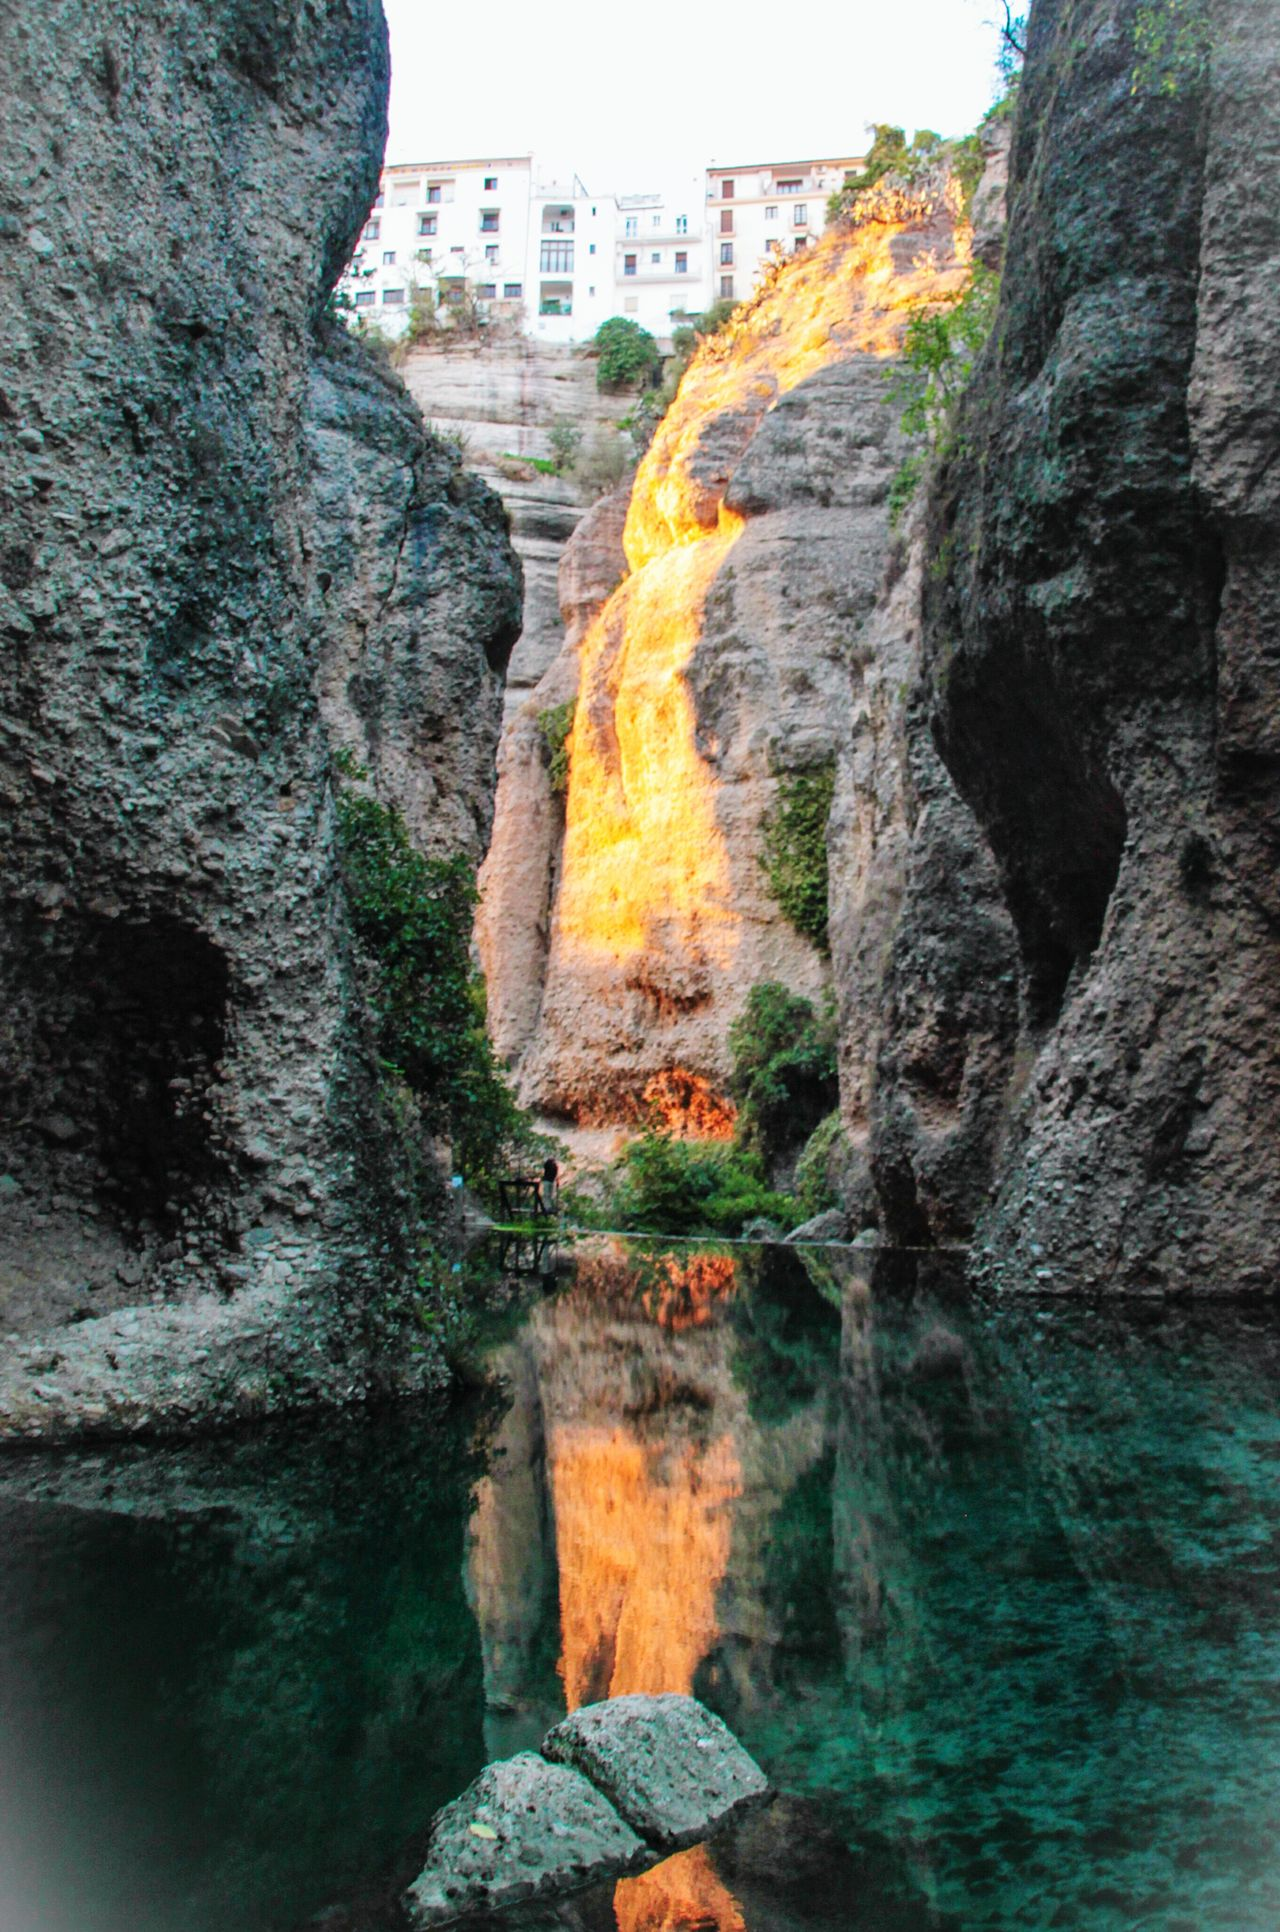 Reflection Outdoors Building Exterior Day Sky No People Water Spanishphotographer Ronda Spain Ronda Ronda, Malaga EyeEm Gallery Check This Out Rocks And Water Rock Formation Reflections On The Water Reflection In The Water Travel Evening Light Cliff